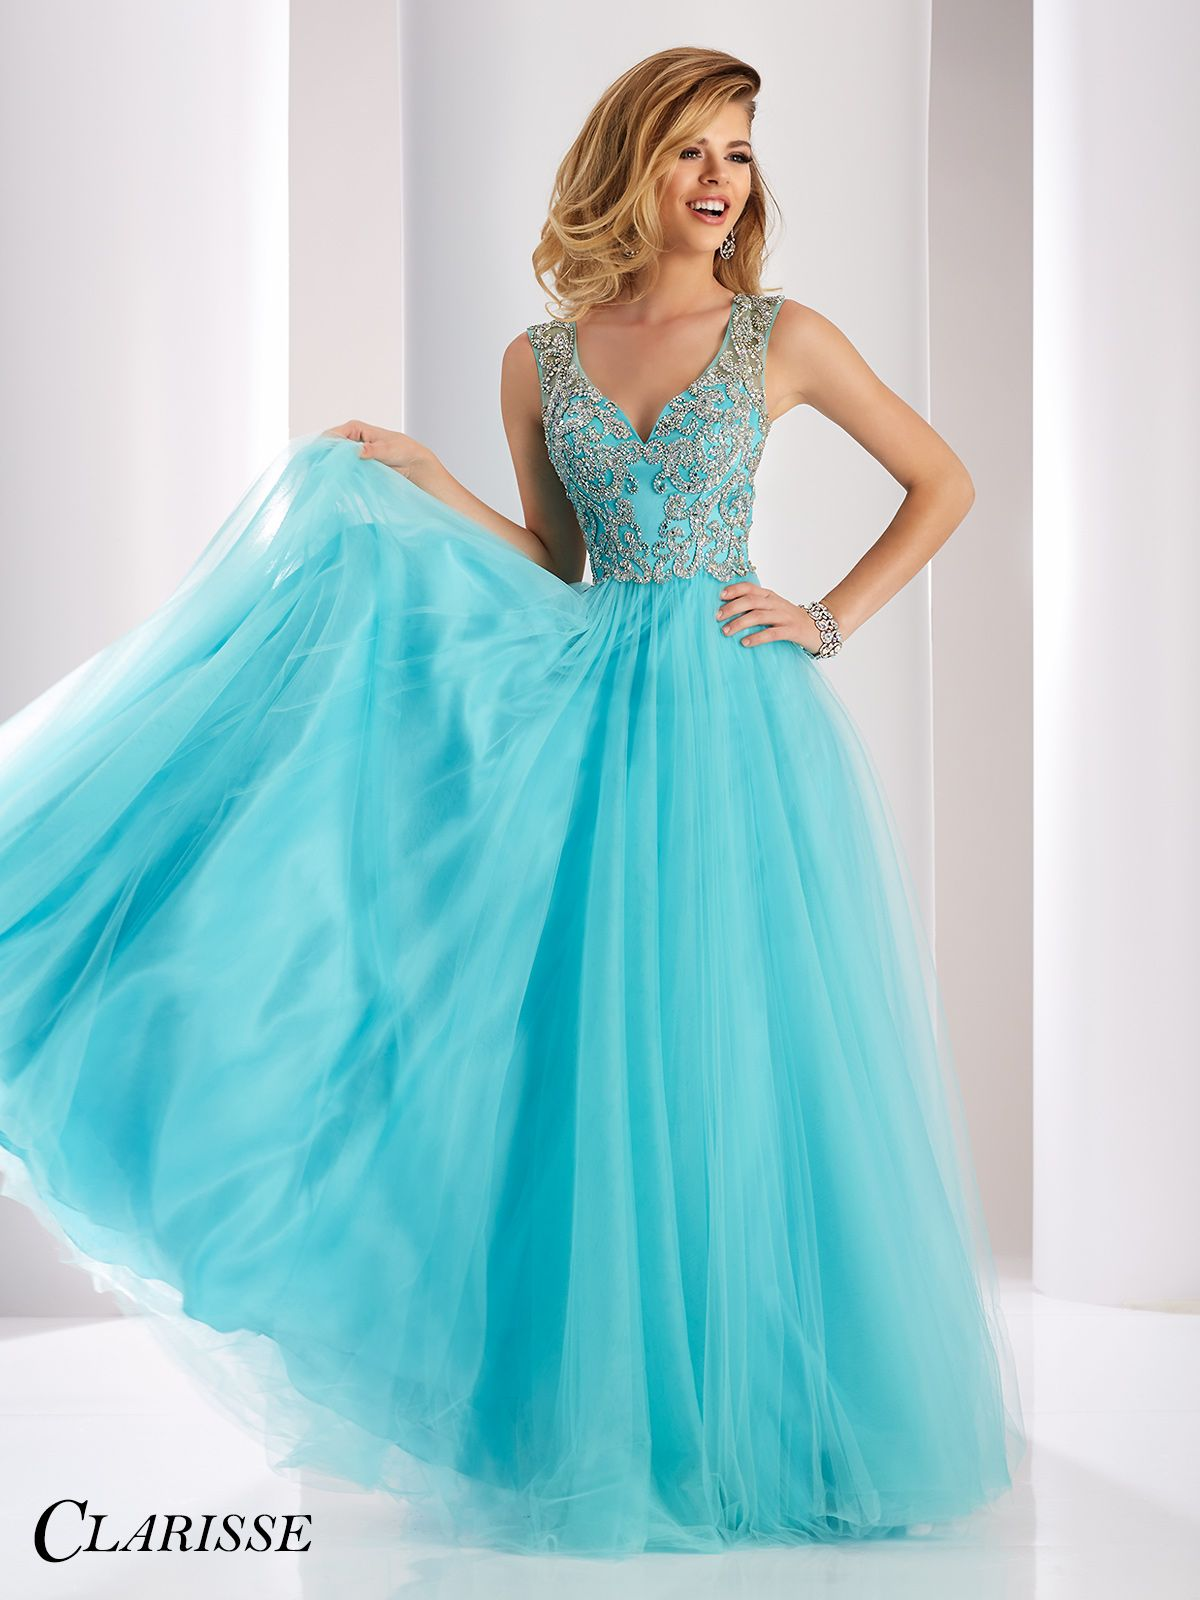 df9bc8471db Clarisse Prom Dress 3019. DESCRIPTION  Sleeves with crystals